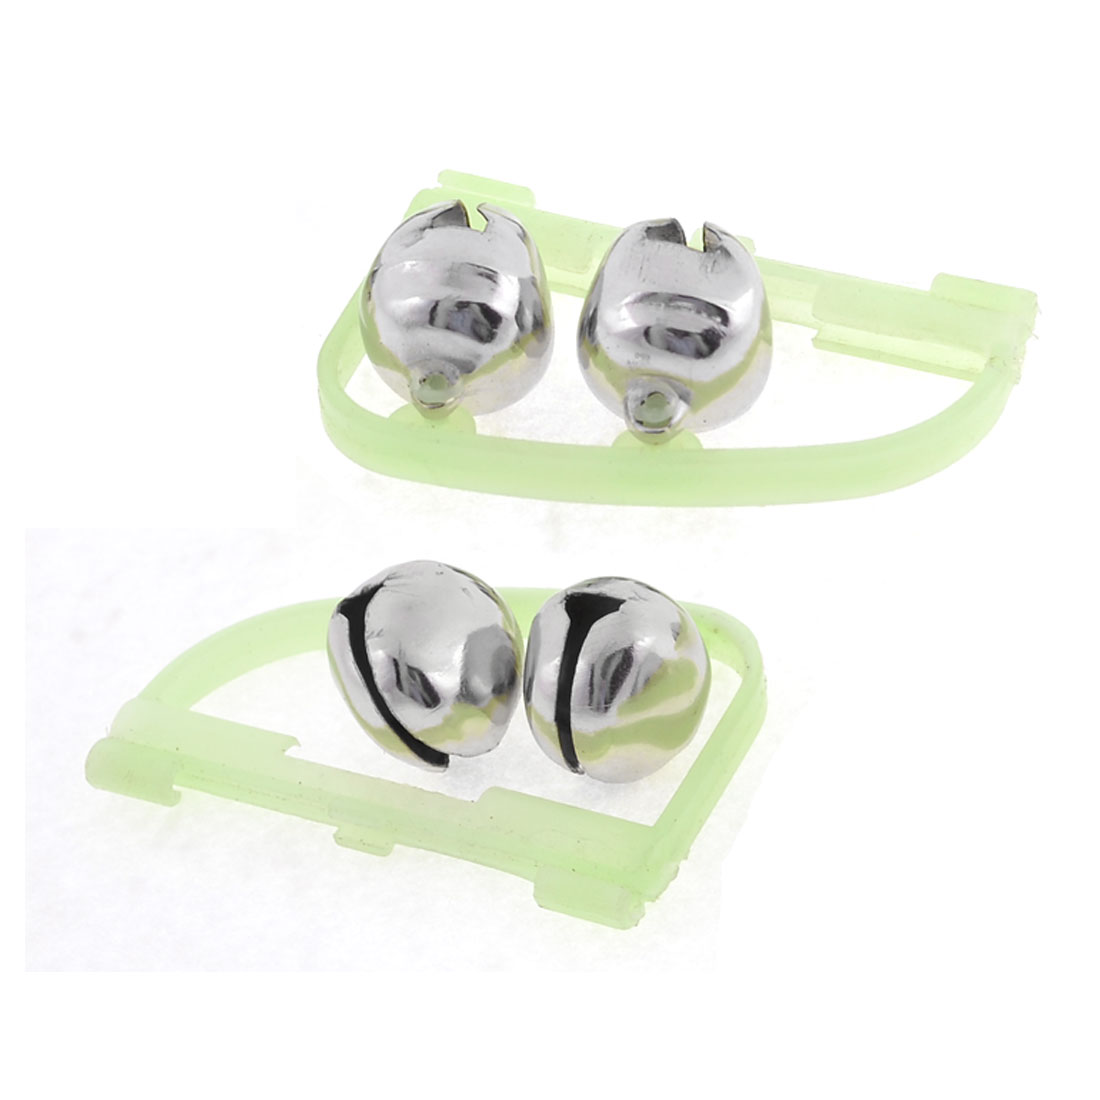 2 Pcs Fluorescent Fishing Pole Alarm Round Twin Alert Bells Silver Tone Green